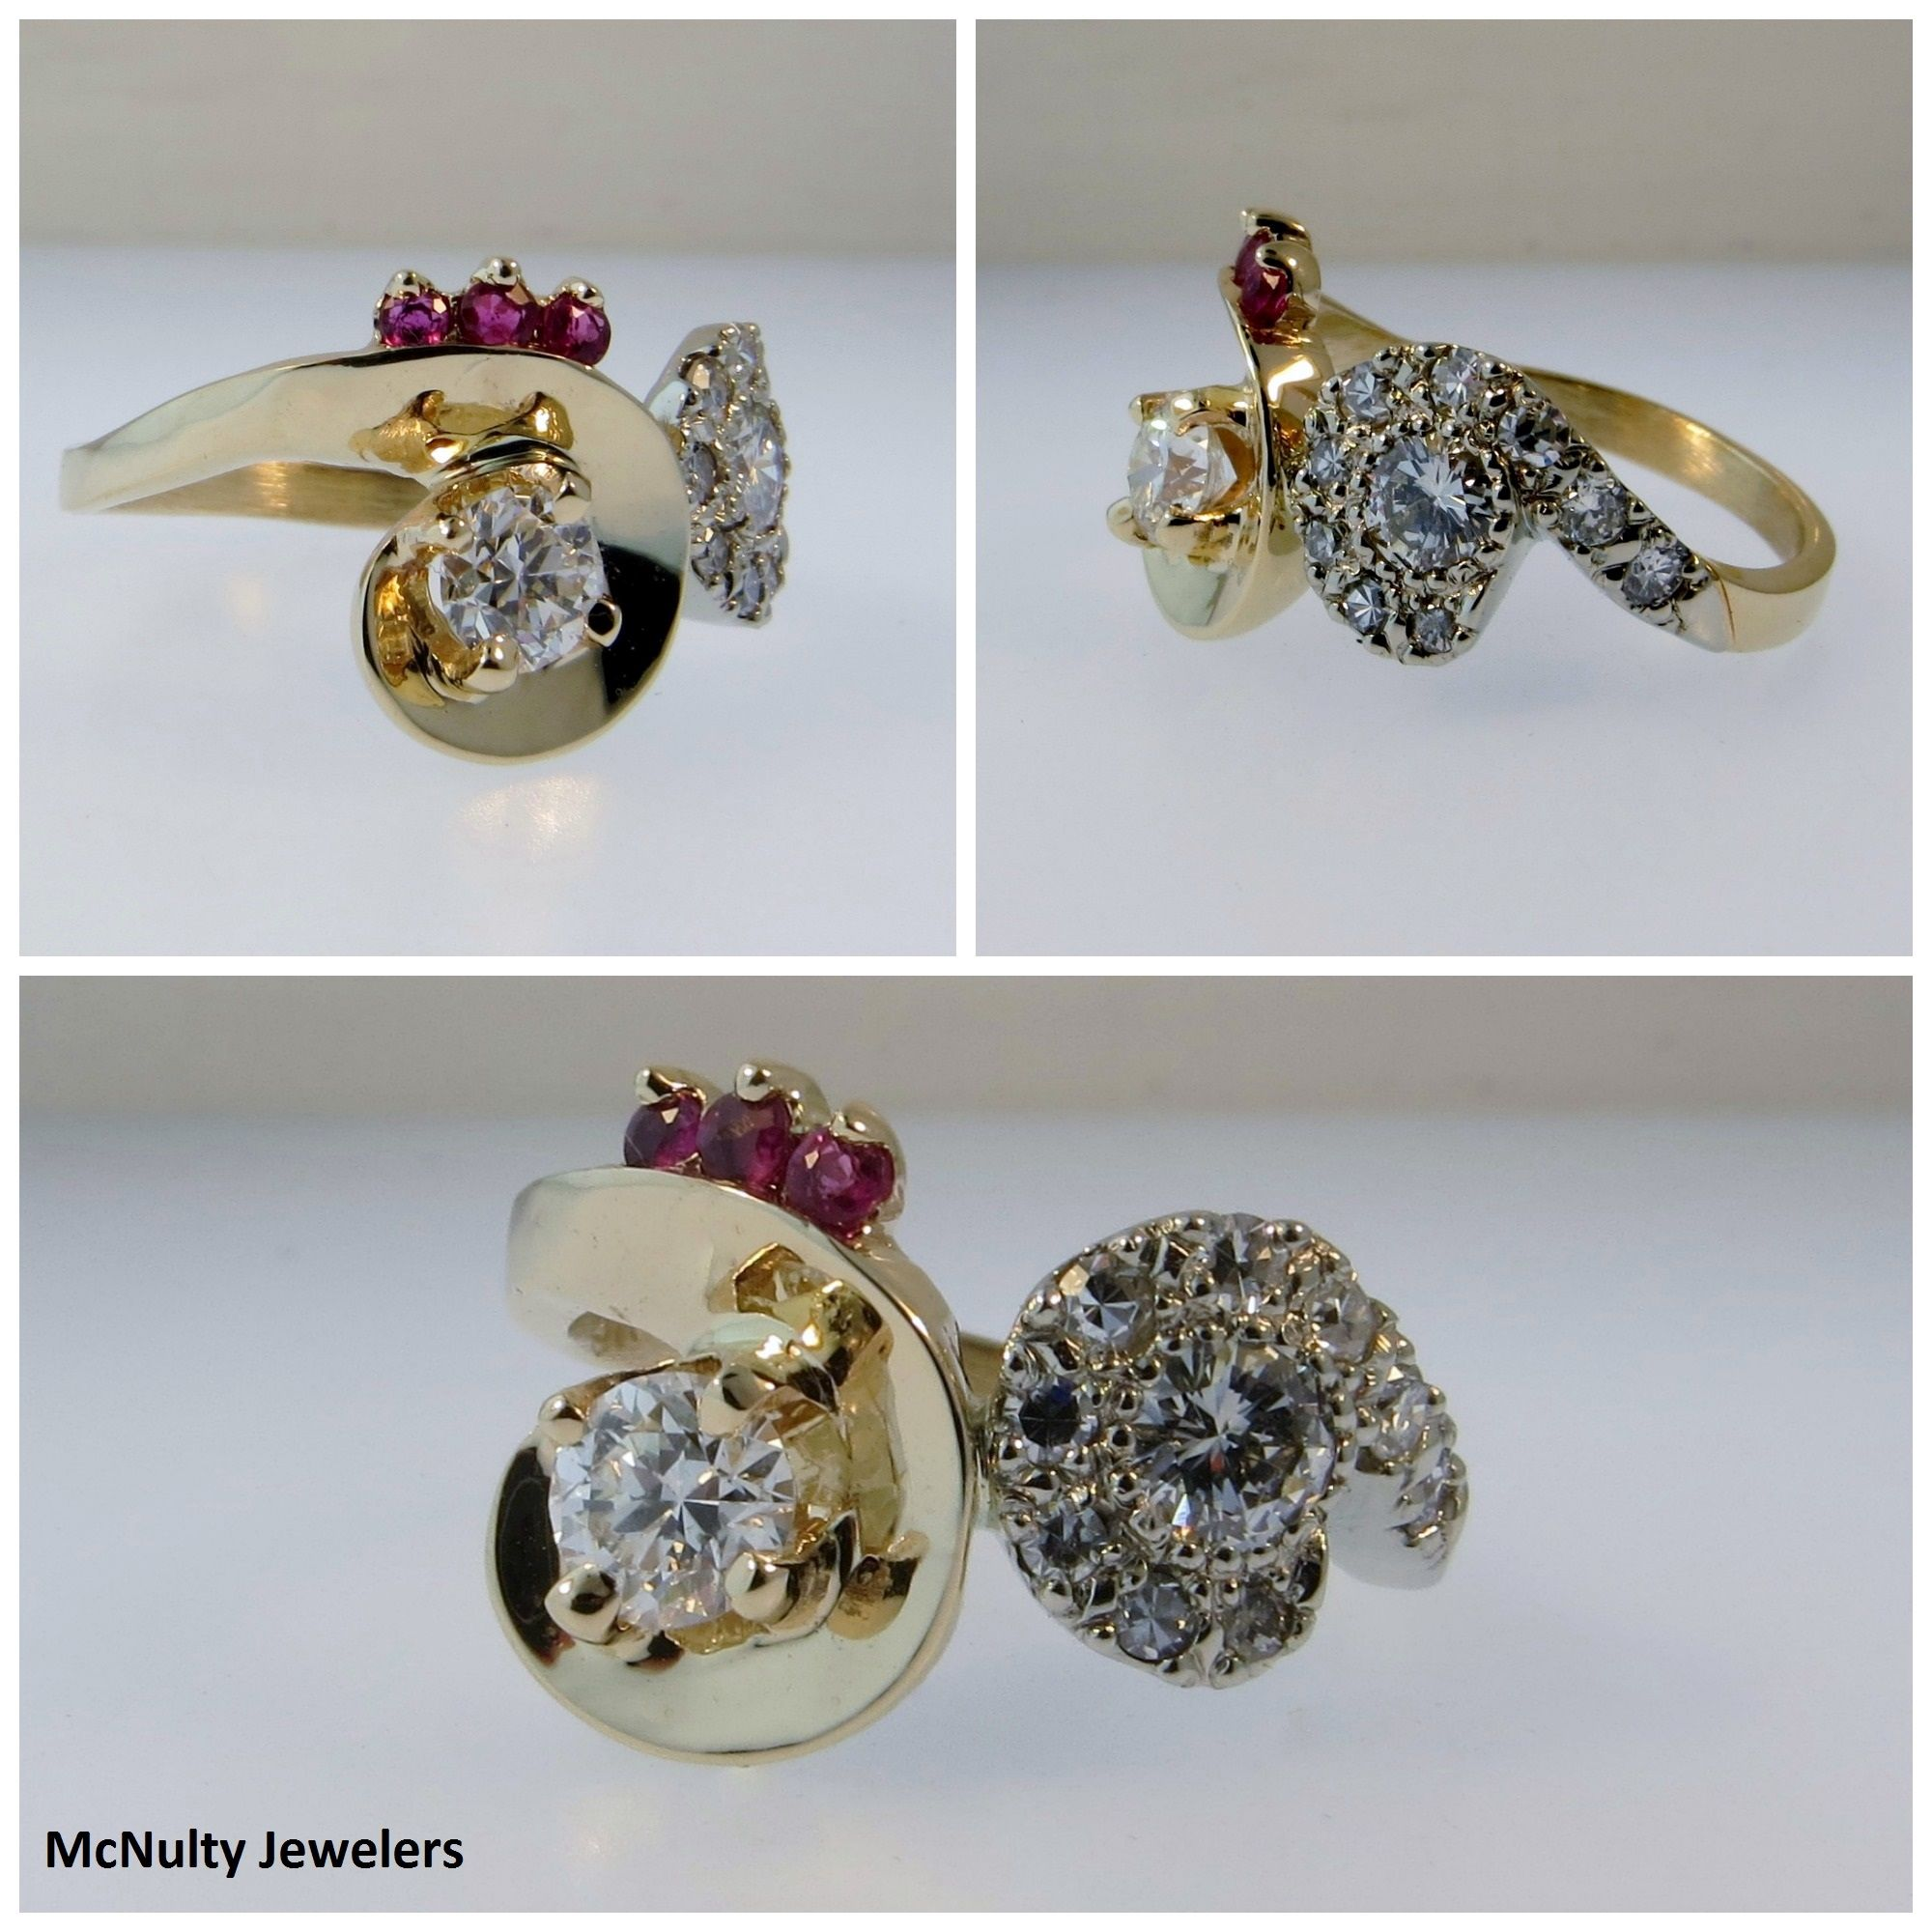 The wearer of this beautiful piece wanted a ring that would be easy to wear and would combine stones from her wedding ring and her mom's wedding ring. This ring reflects the original style of both rings with an updated, wearable look. McNulty Jewelers original design